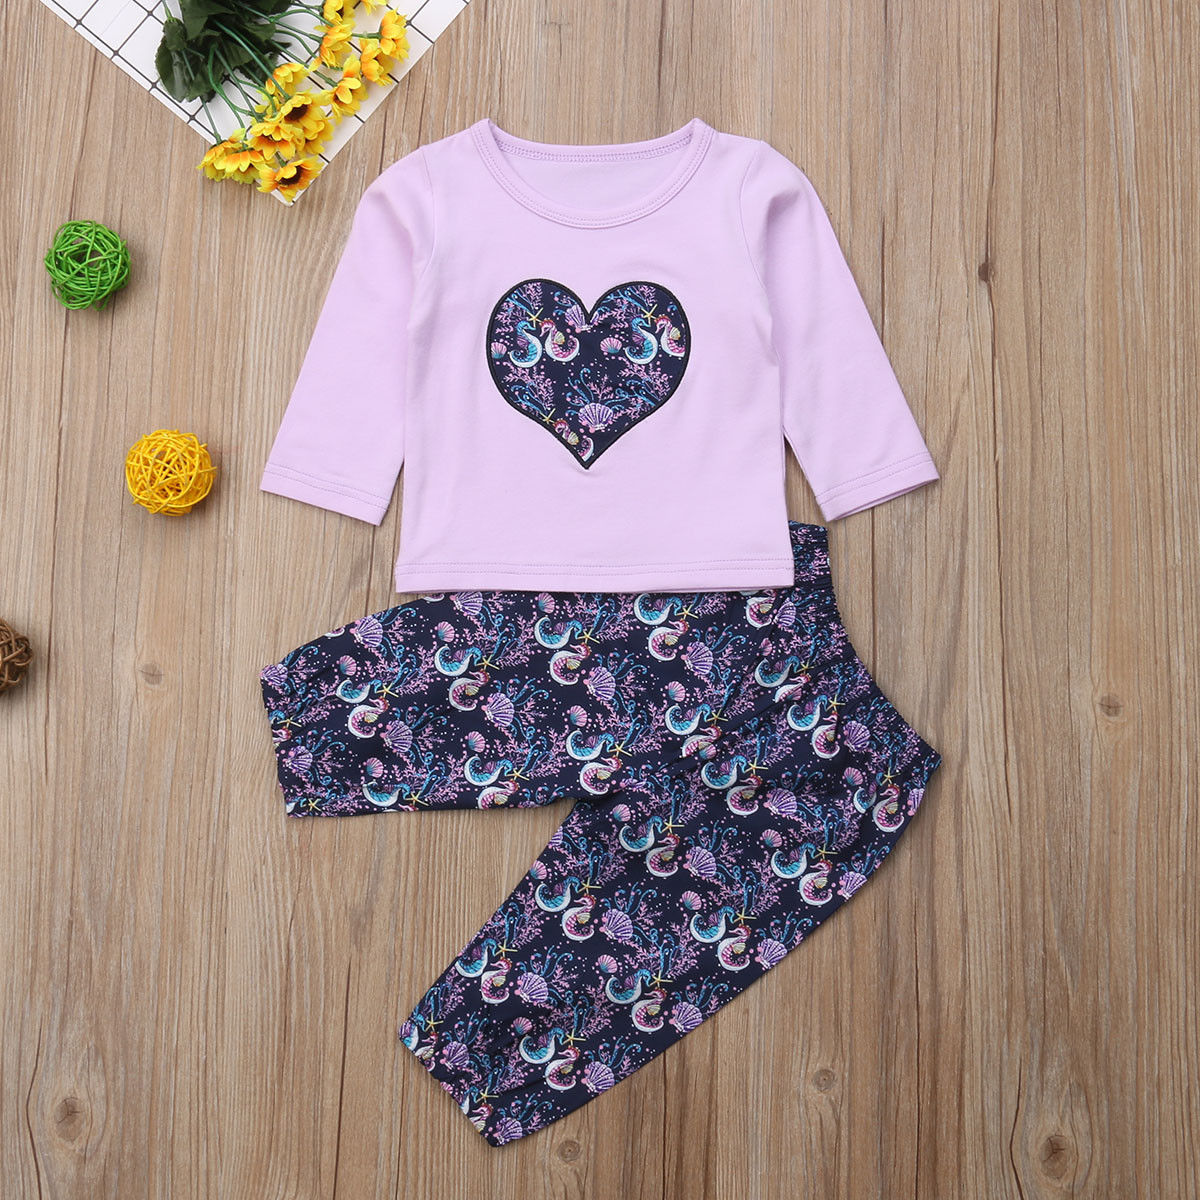 498bab1c1 3Pcs Newborn Infant Baby Girls Seahorse Print Floral Clothes Long Sleeve Tops  T shirt Long Pants